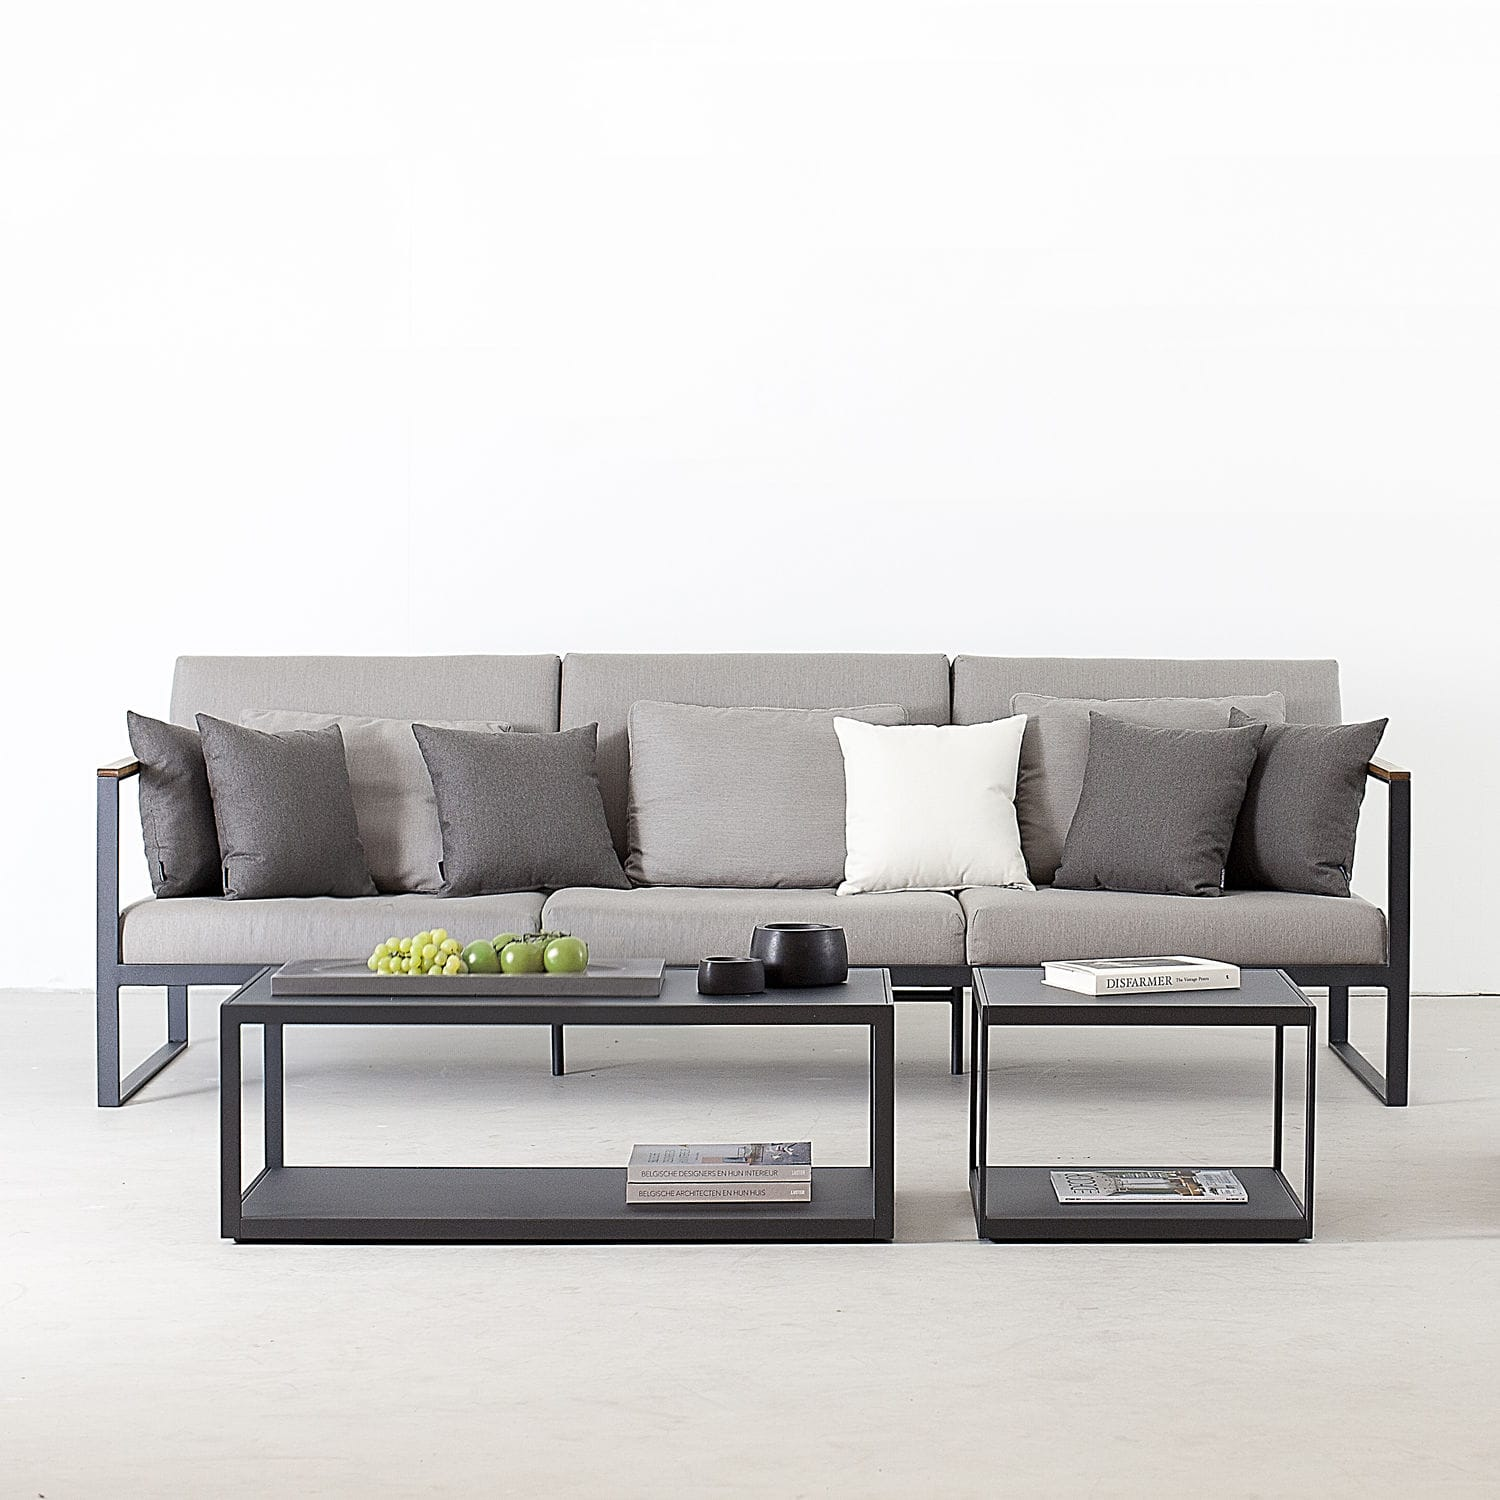 Contemporary sofa / garden / teak / stainless steel - EASY by ...